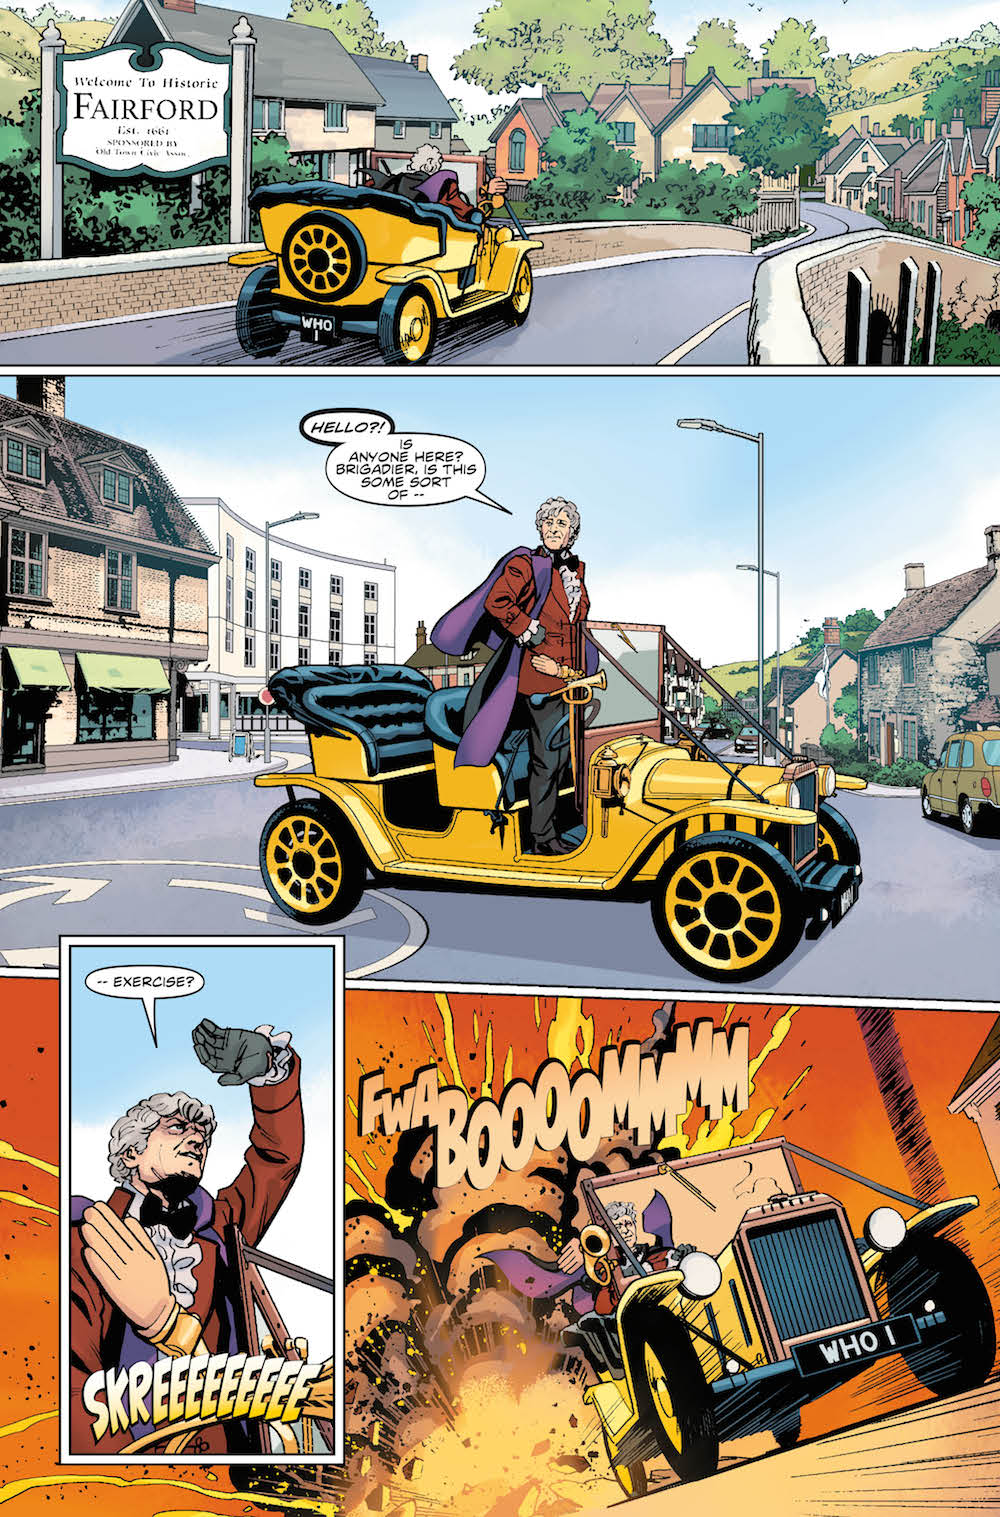 DOCTOR WHO: THIRD DOCTOR #1 PREVIEW 4